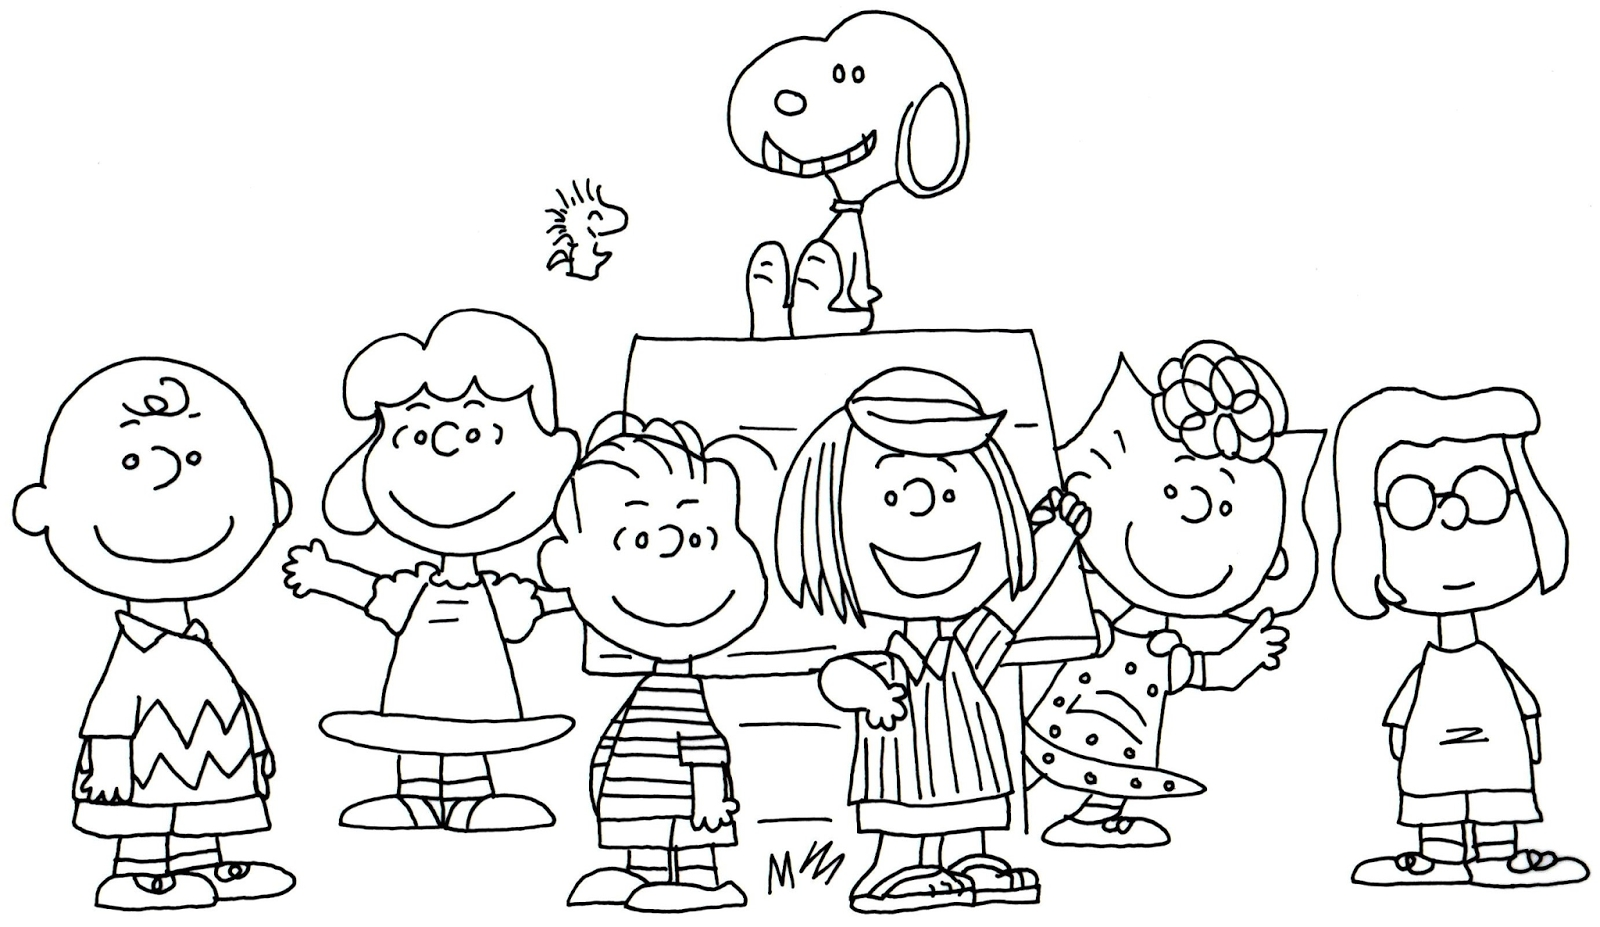 peanuts coloring pages - woodstock snoopy coloring pages